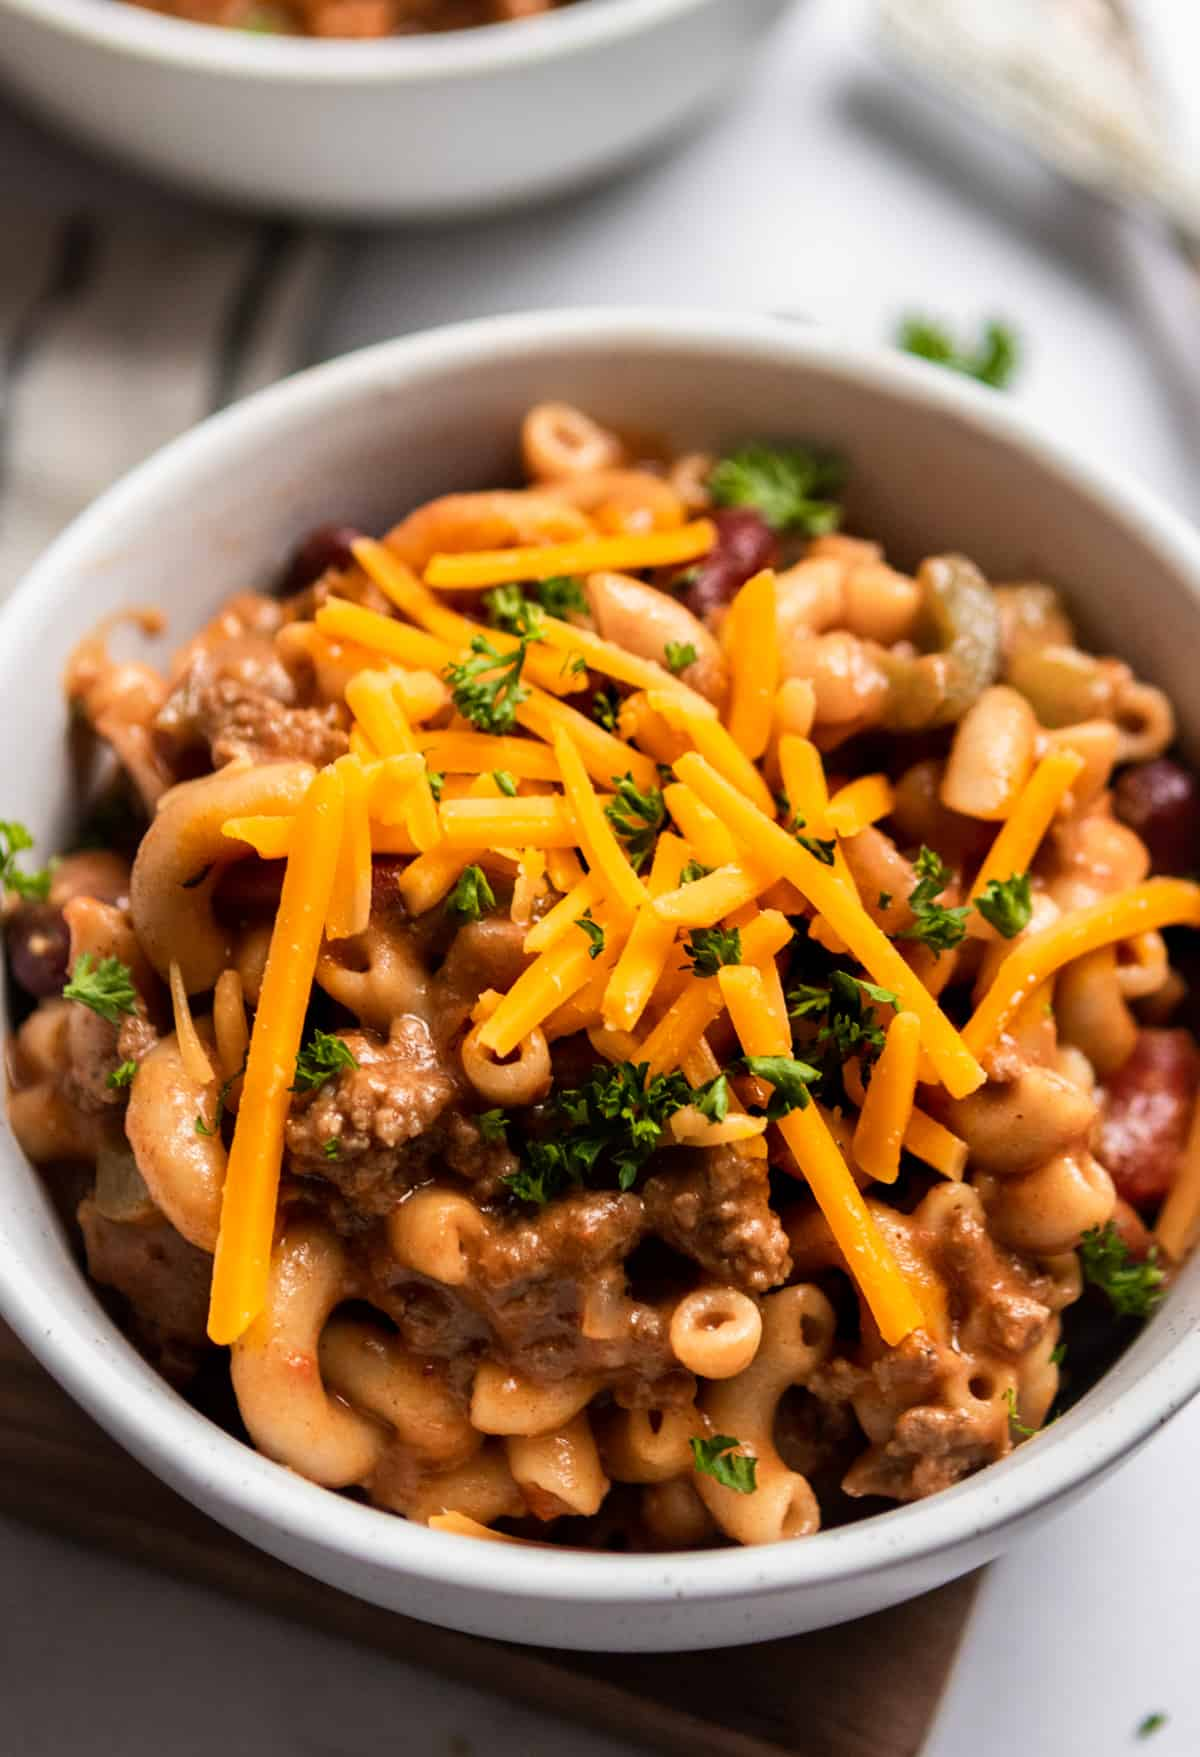 One Pot chili mac and cheese in white bowl with parsley and cheese garnish.